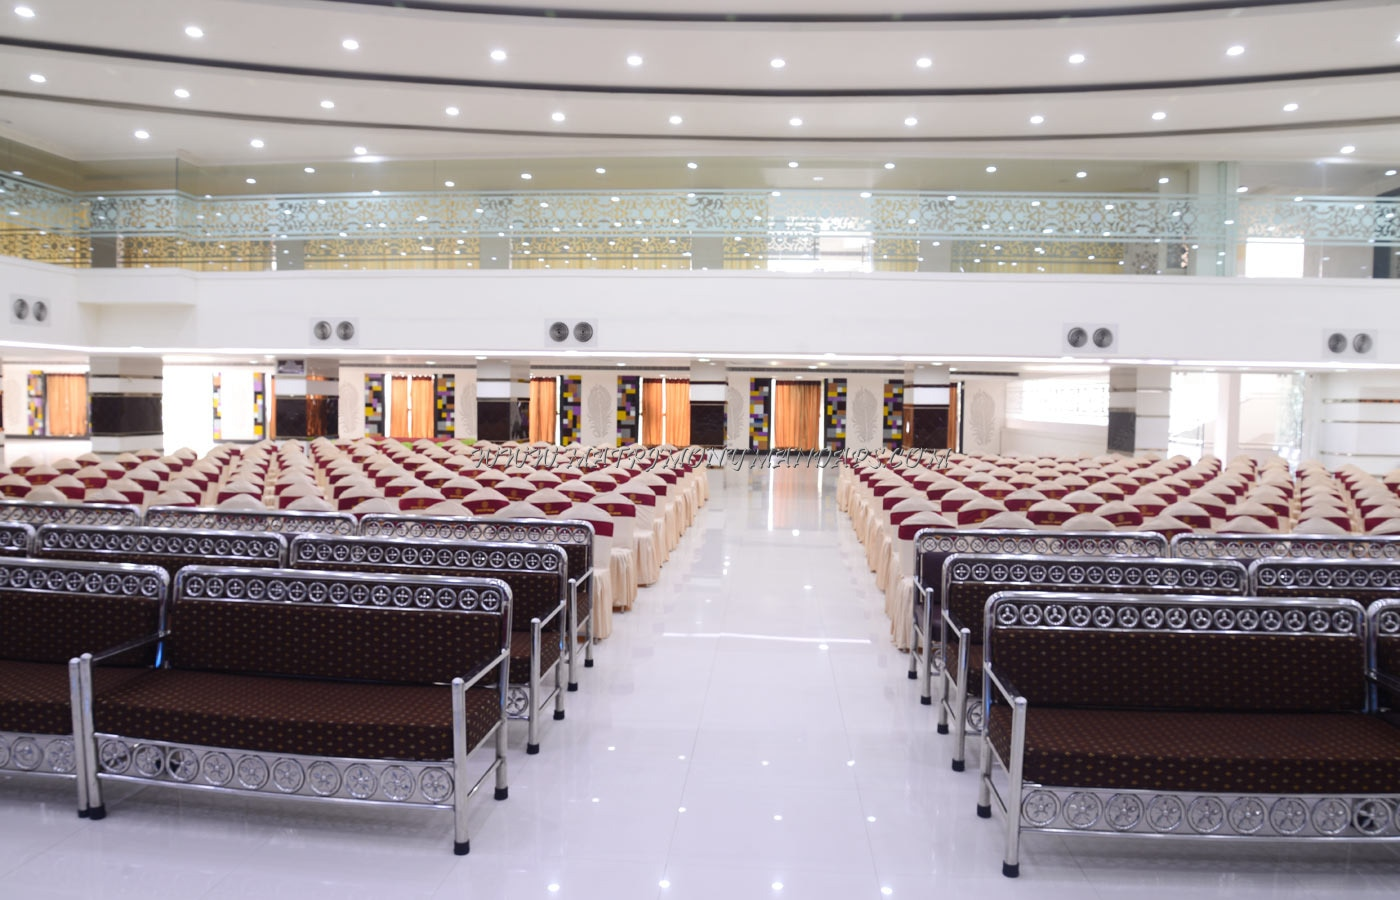 Find the availability of the Hotel Swagath Convention - Bhaskara (A/C) in Jillelaguda, Hyderabad and avail special offers